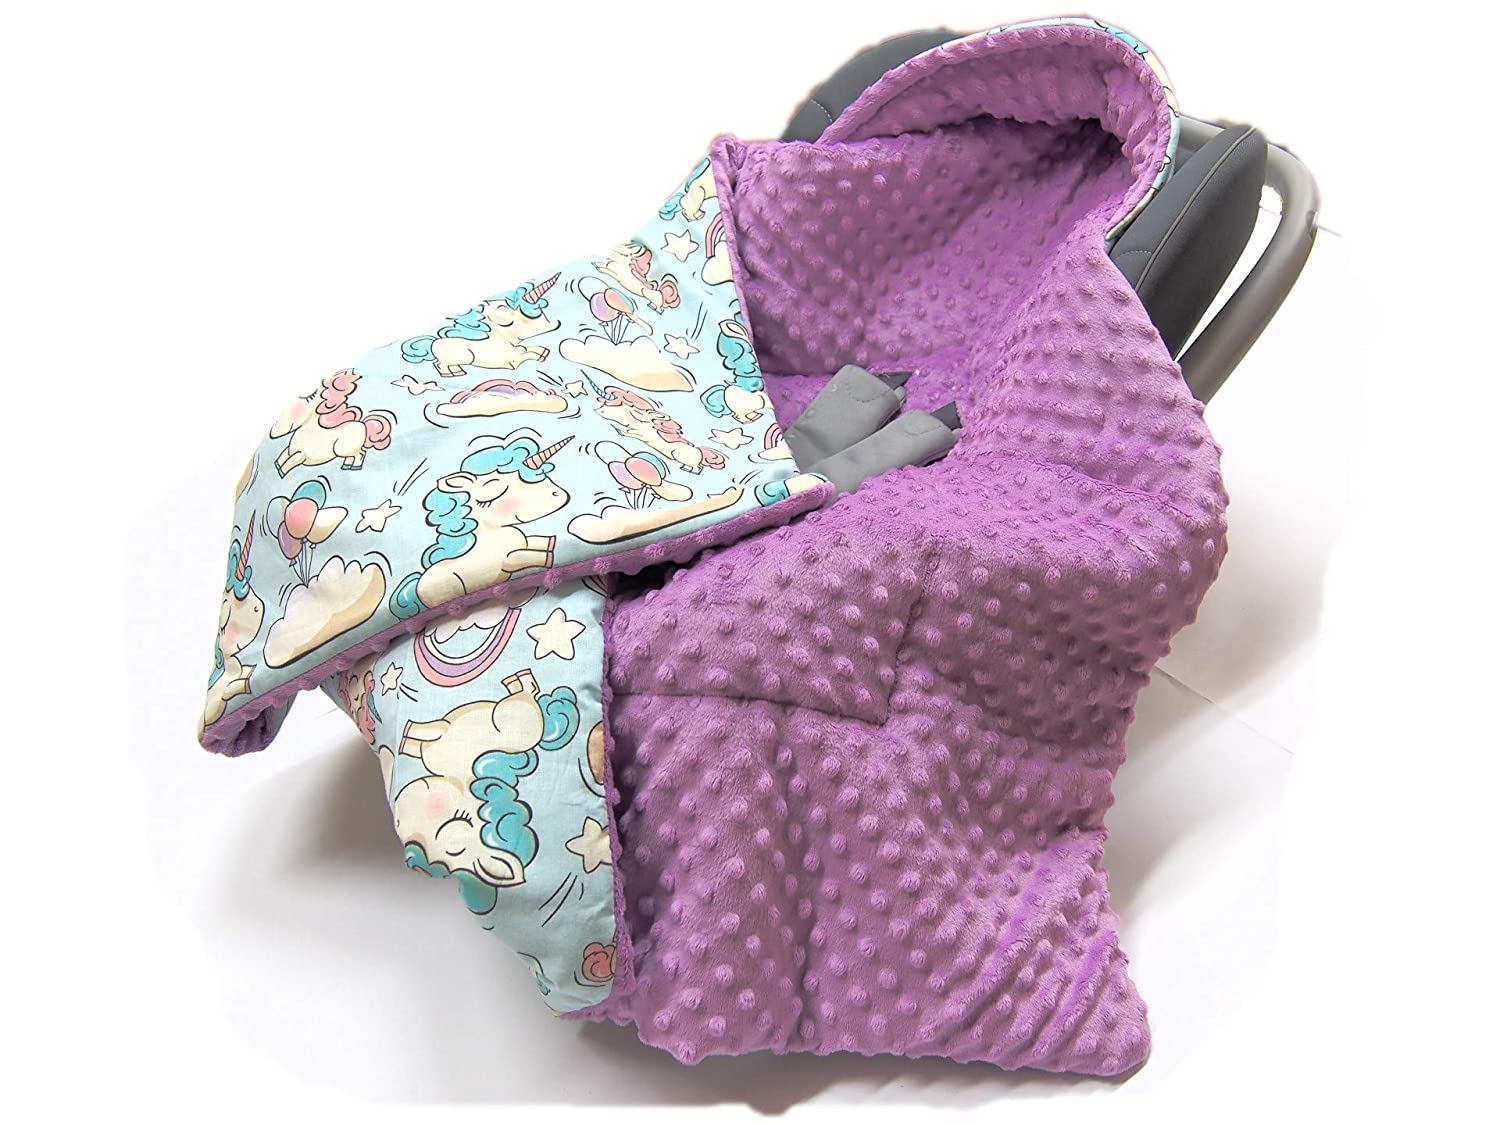 PUSHCHAIR BLANKET COVER Cars on Blue with Red Minky COSYTOES Hooded CAR SEAT PADDED BABY BLANKET Reversible Cotton//Minky